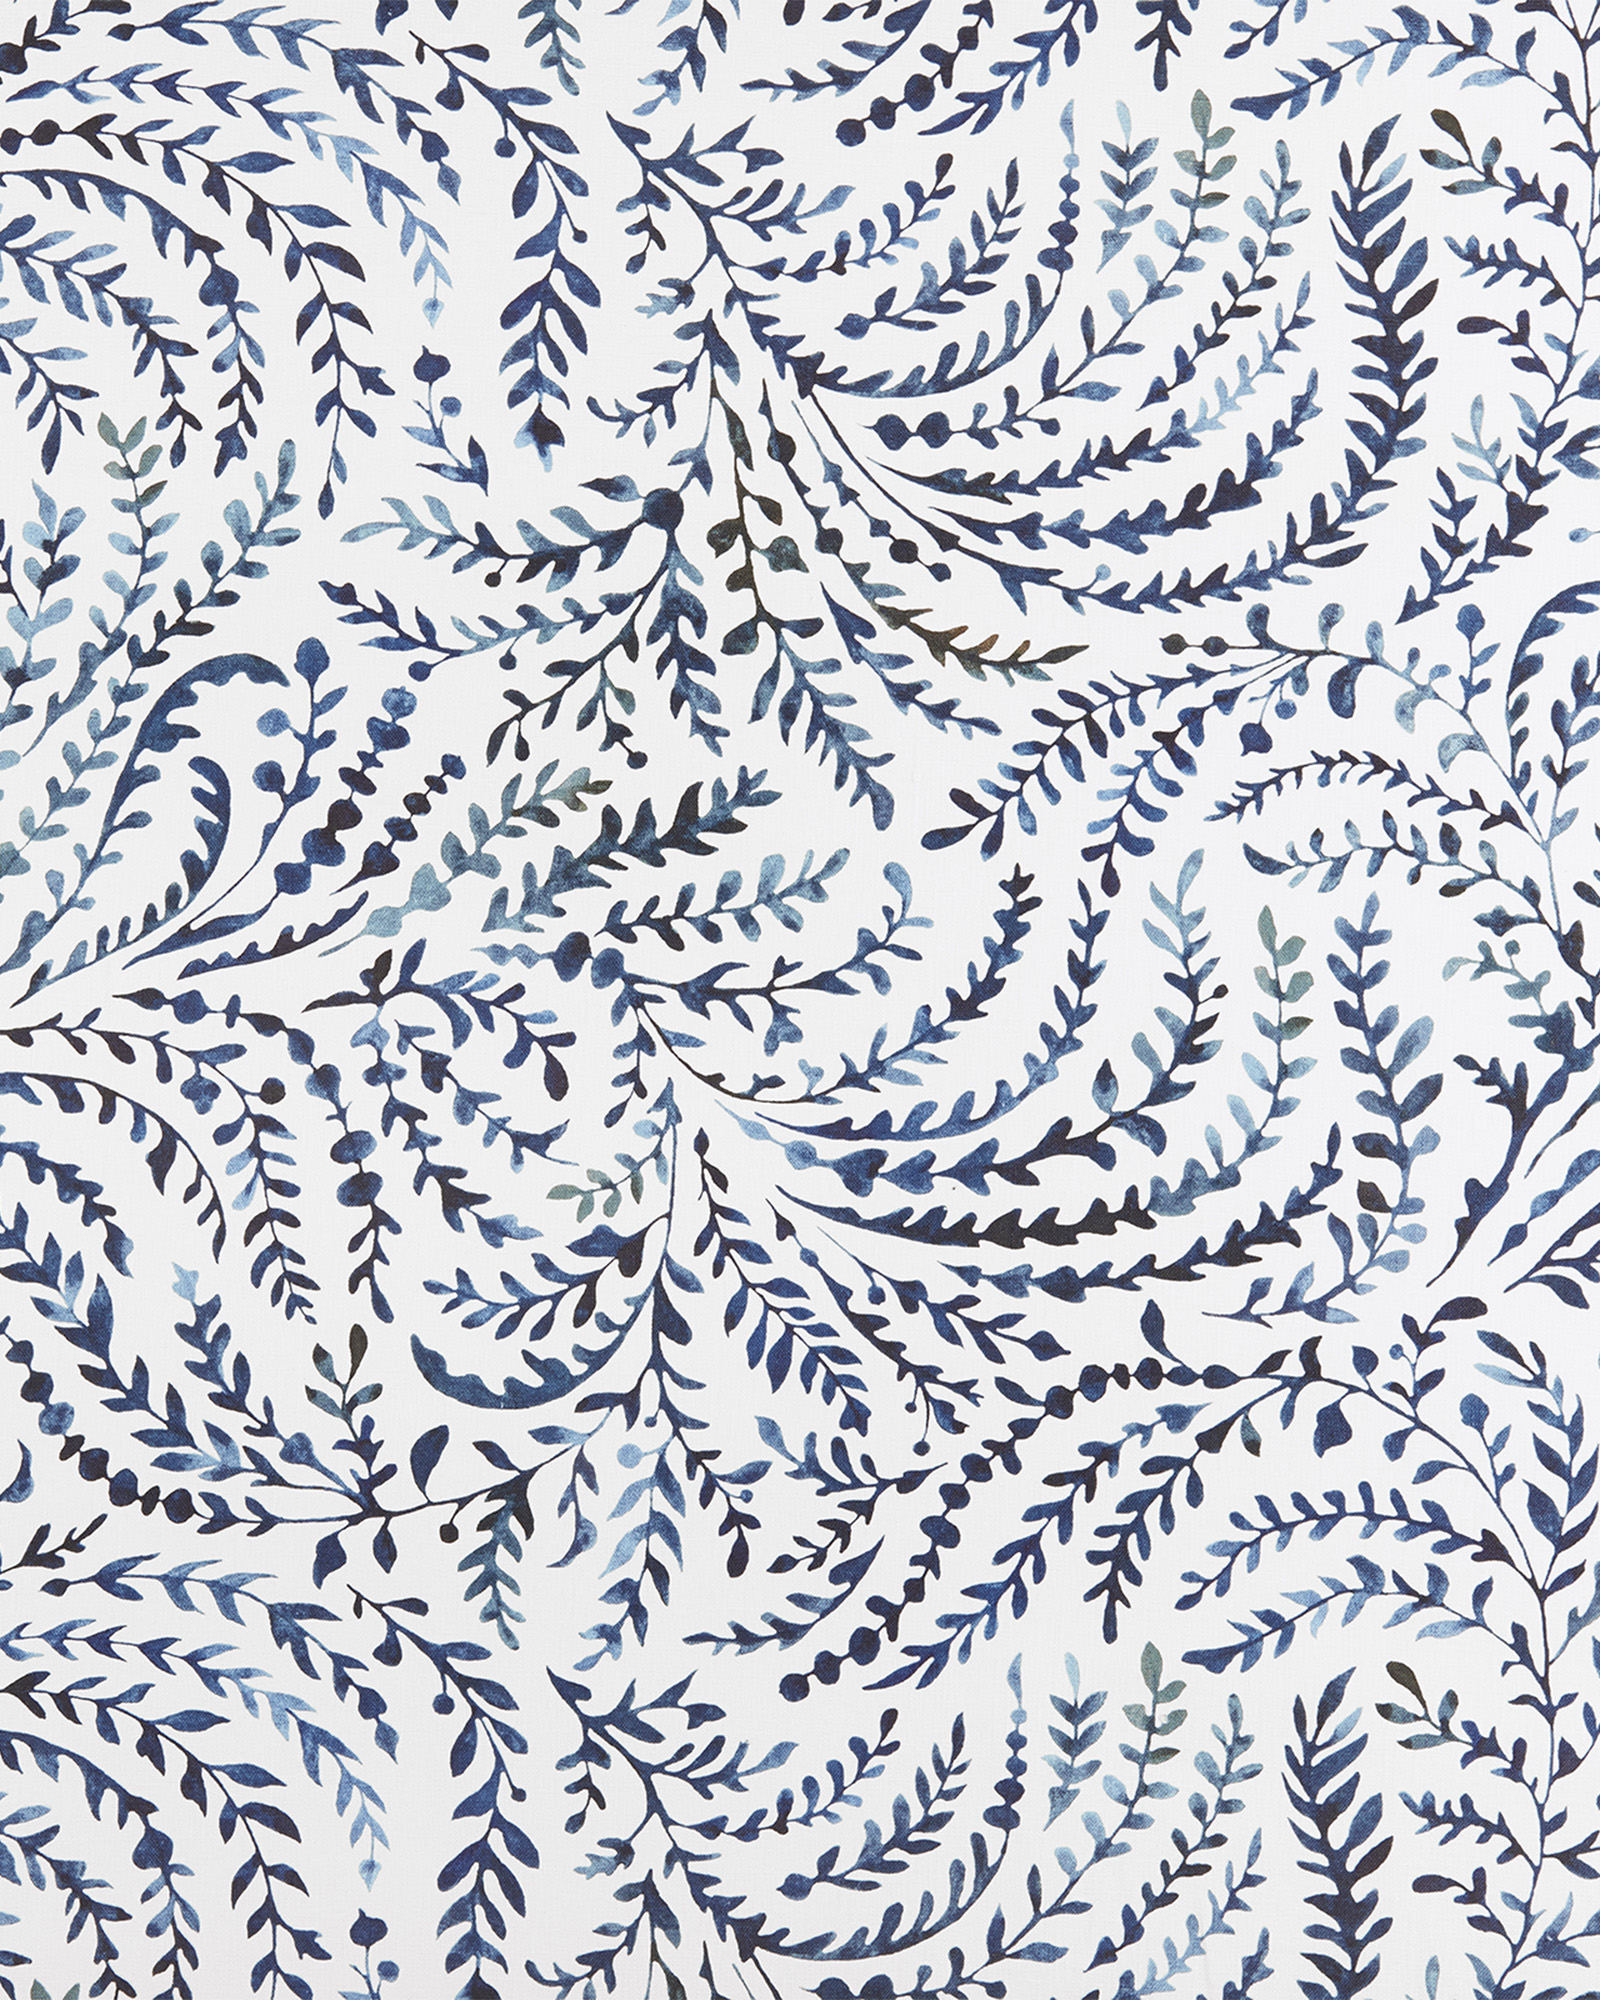 Fabric By the Yard - Priano Linen, Navy